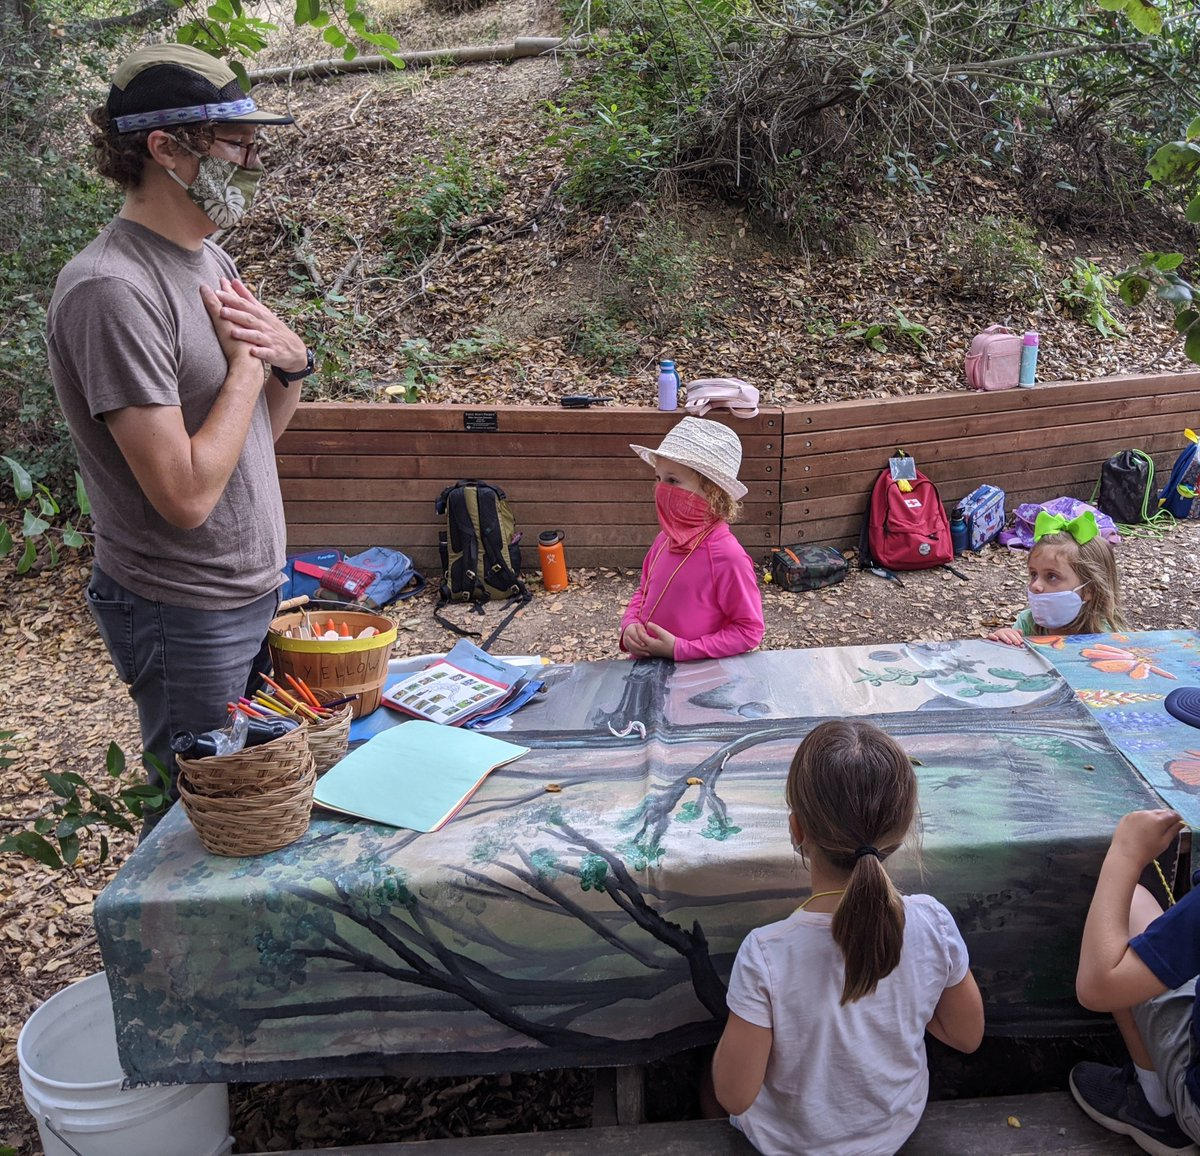 Send your kiddoes to ENC After School Nature Camp! After their virtual or in person school day is done, students in K – 5th grade will spend time at the ENC with friends and mentors for hands-on learning, creative enrichment, & a chance to explore. https://t.co/Wgu9vWQF4V https://t.co/rogqw30fCO